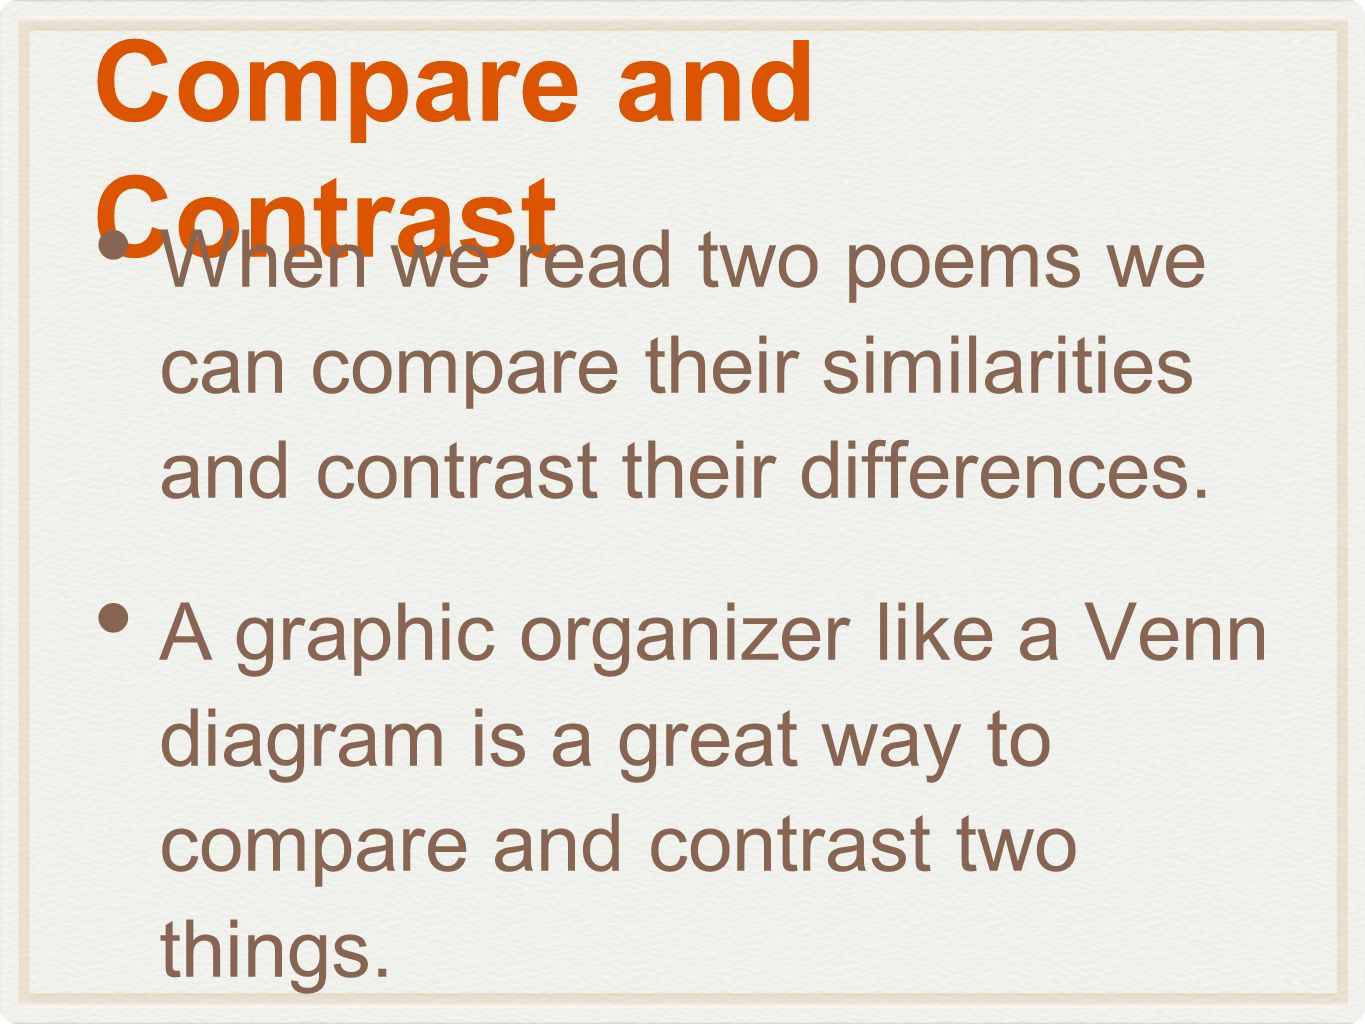 compare and contrast these two poems essay Compare and contrast - america and kuwait compare and contrast essay usa and kuwait has its own appeal and positives and often times we find ourselves comparing the similarities and differences between these nations based on a variety of aspects like topography, culture.